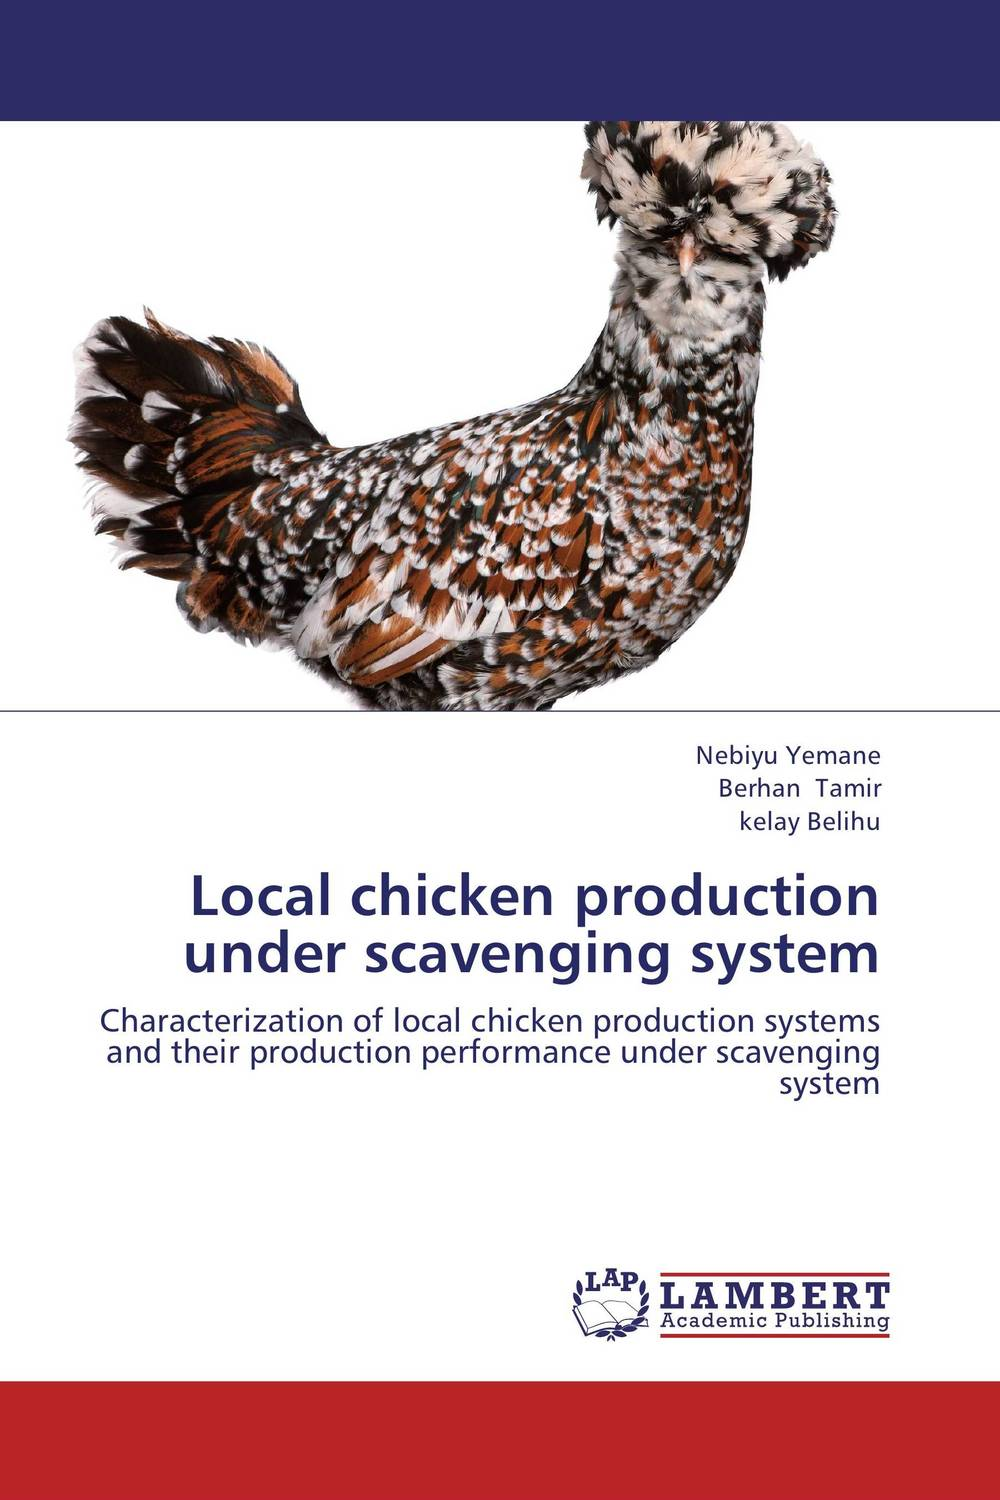 Local chicken production under scavenging system cold storage accessibility and agricultural production by smallholders